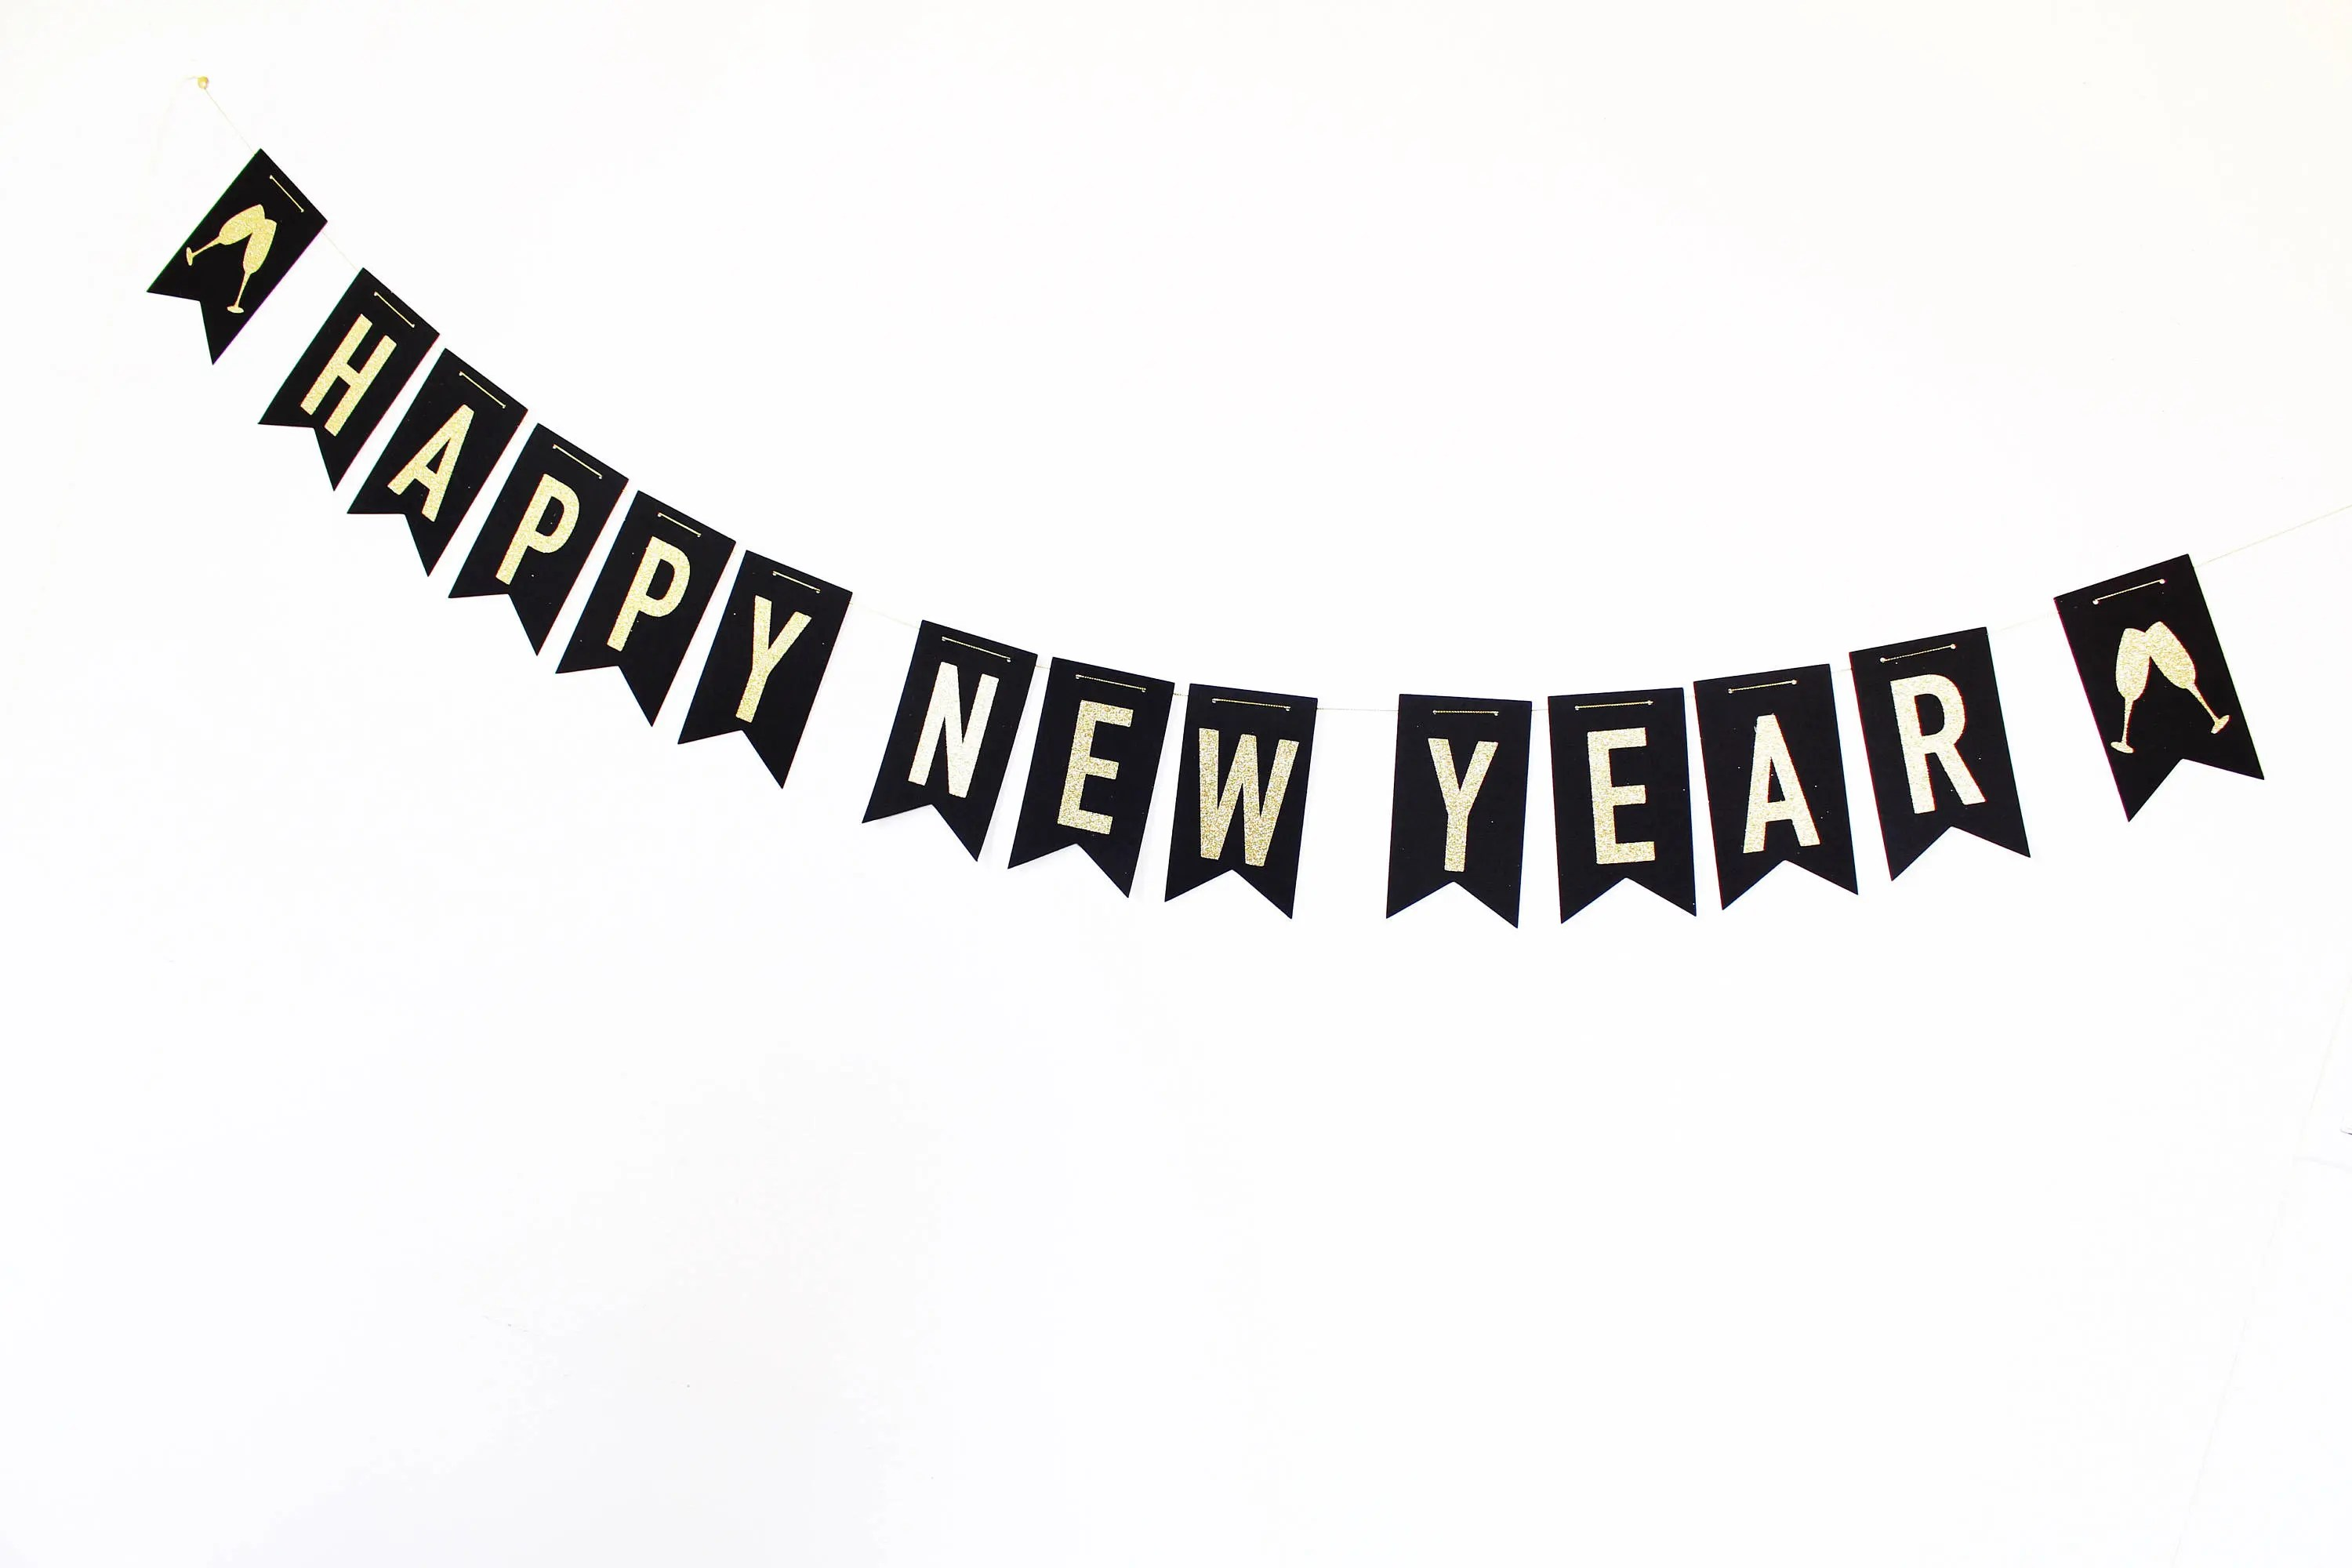 Happy New Year Banner New Years Eve Decorations New Years